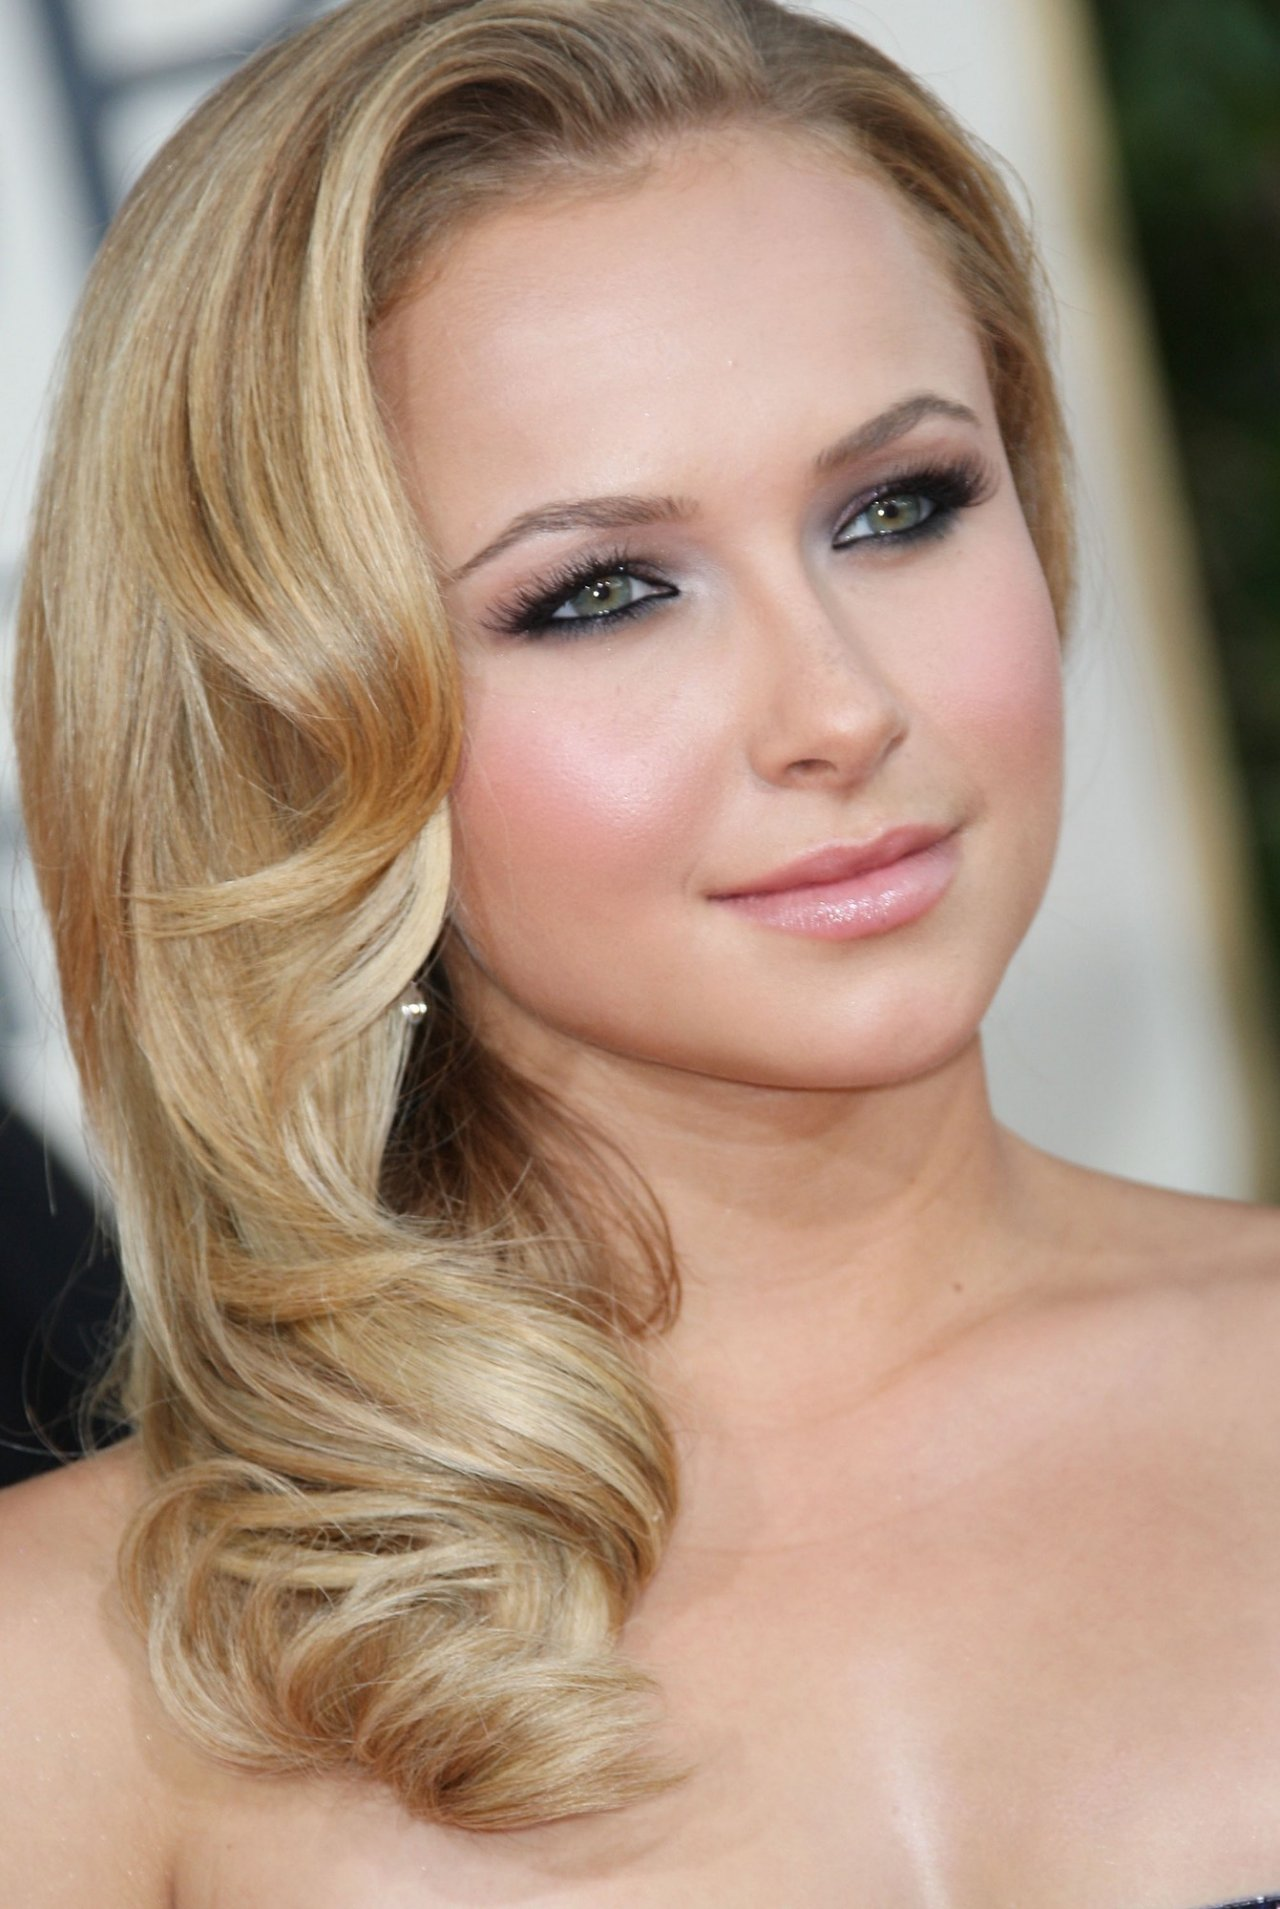 Coiffure Xy Hayden Panettiere Leaked Photos 64037 Best Celebrity